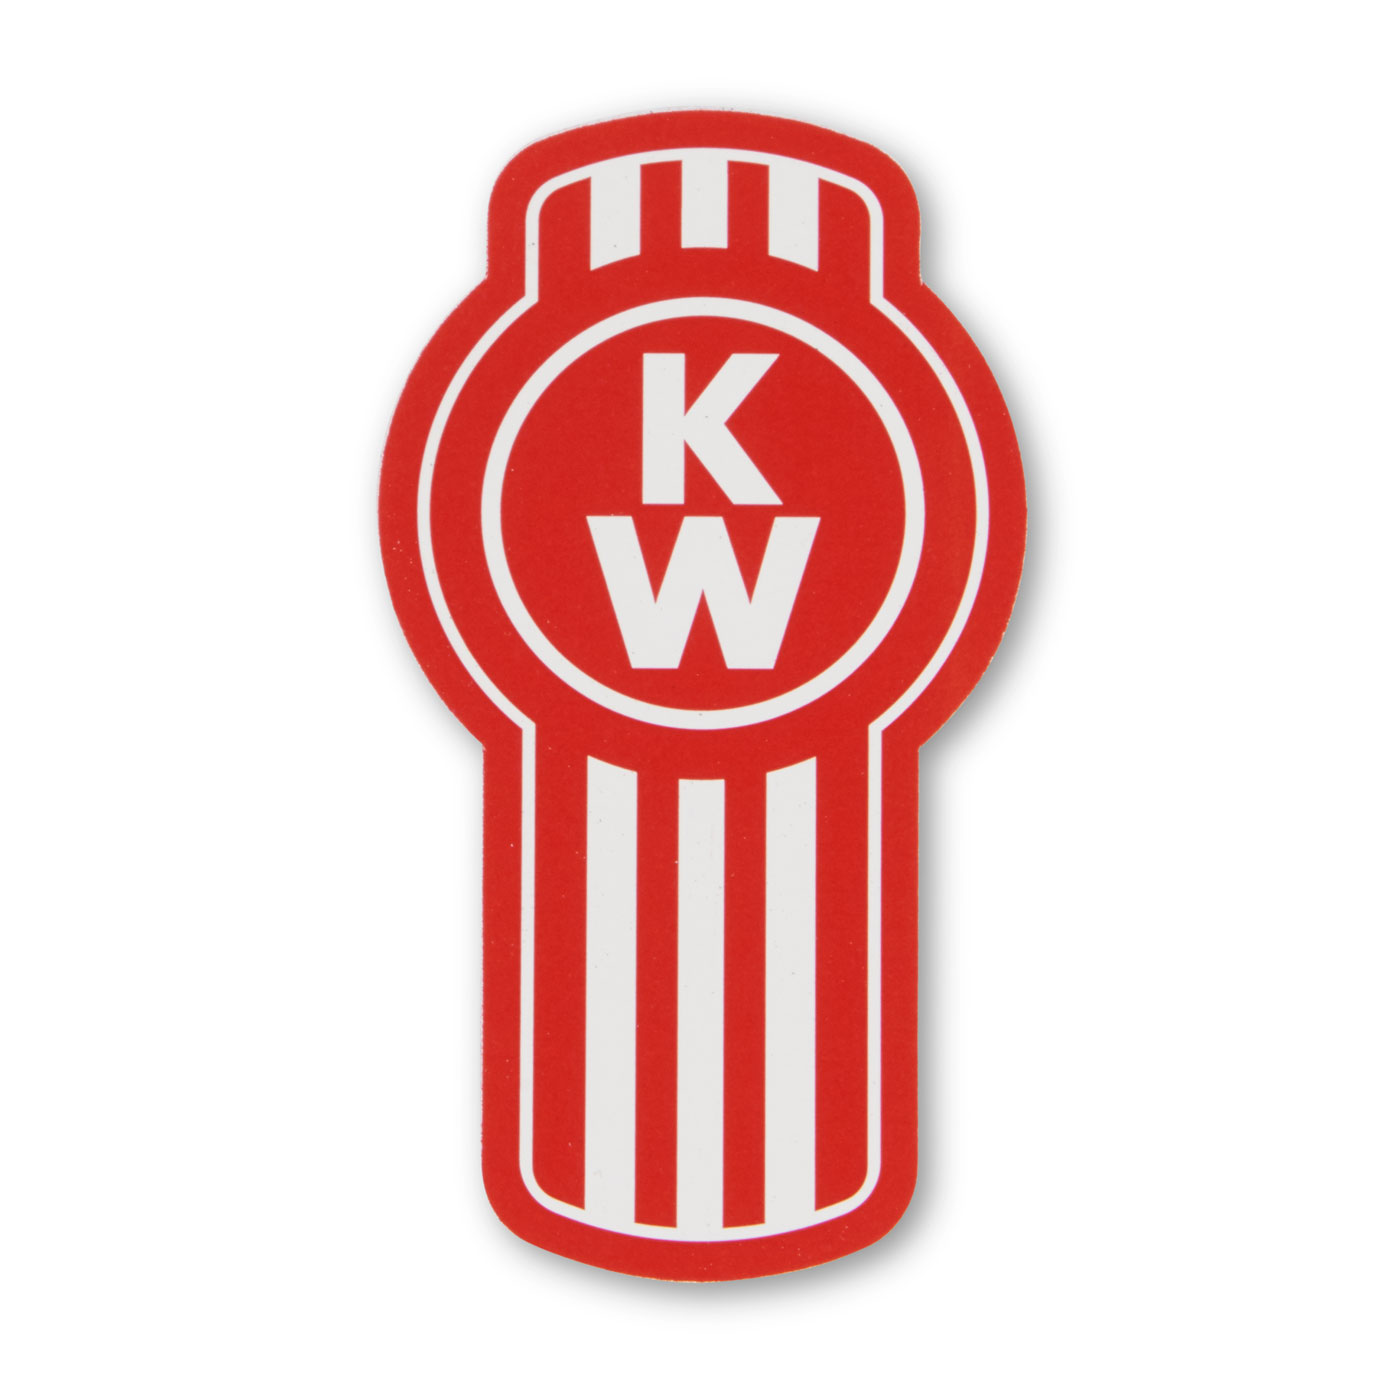 Kenworth Bug Repositionable Decal.